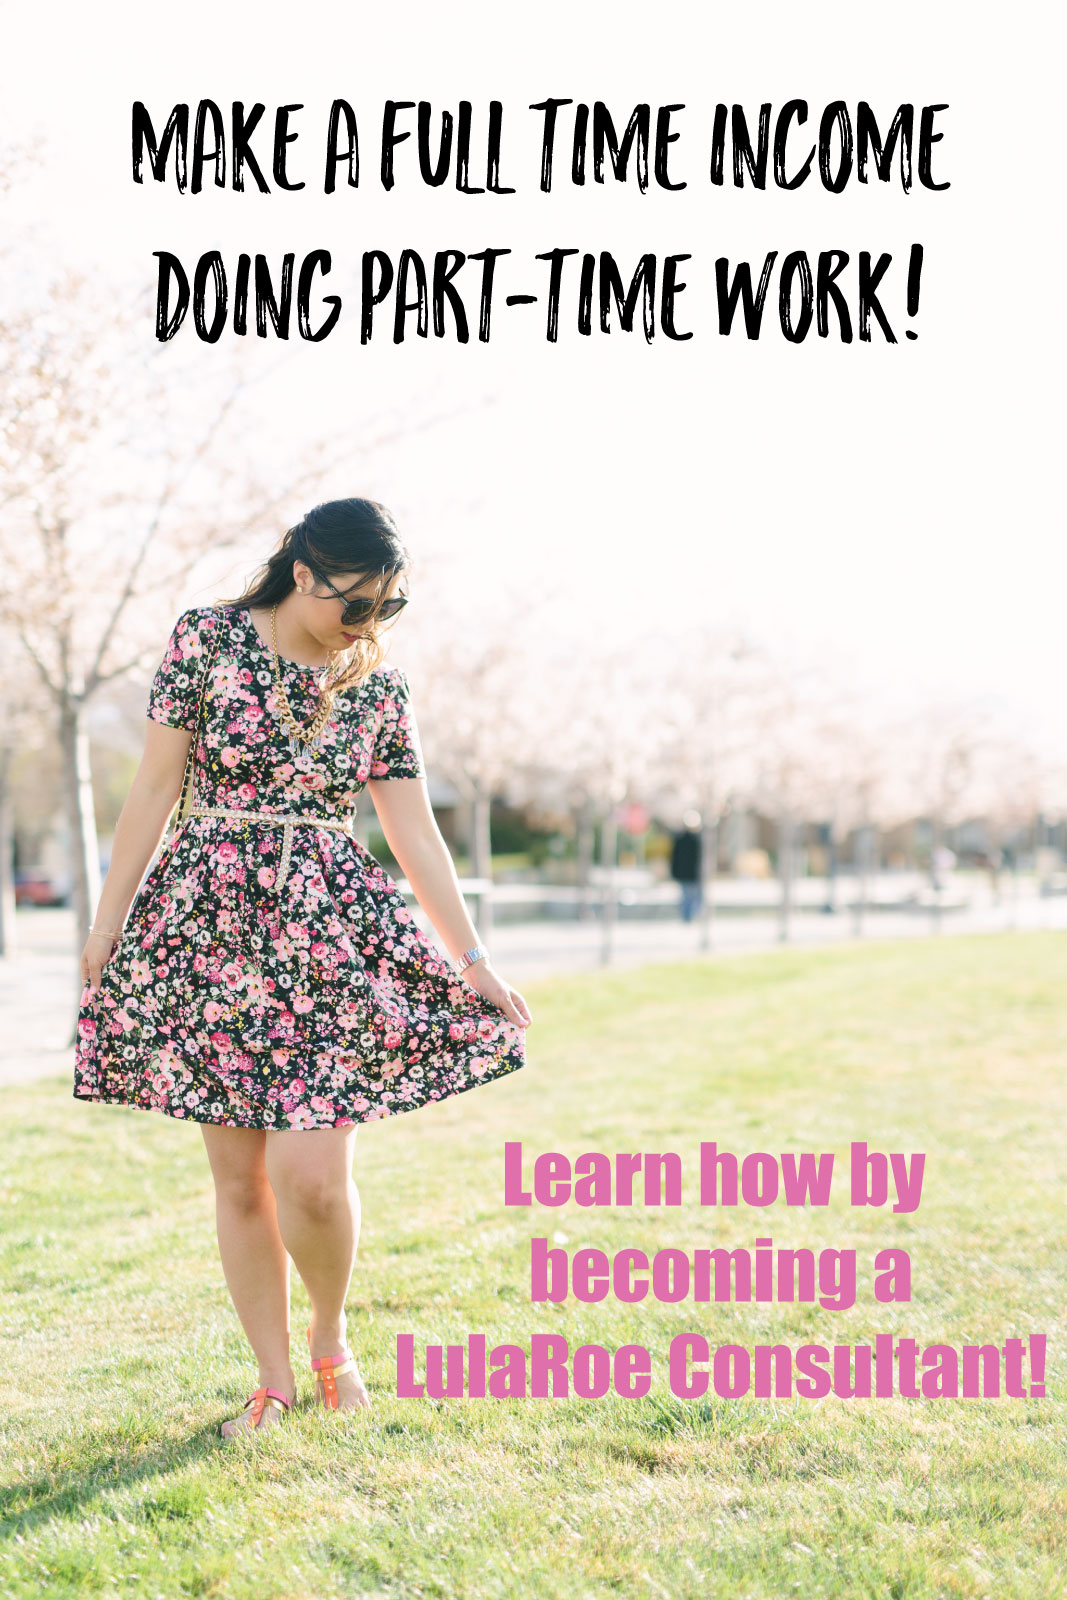 Information on becoming a LulaRoe Consultant